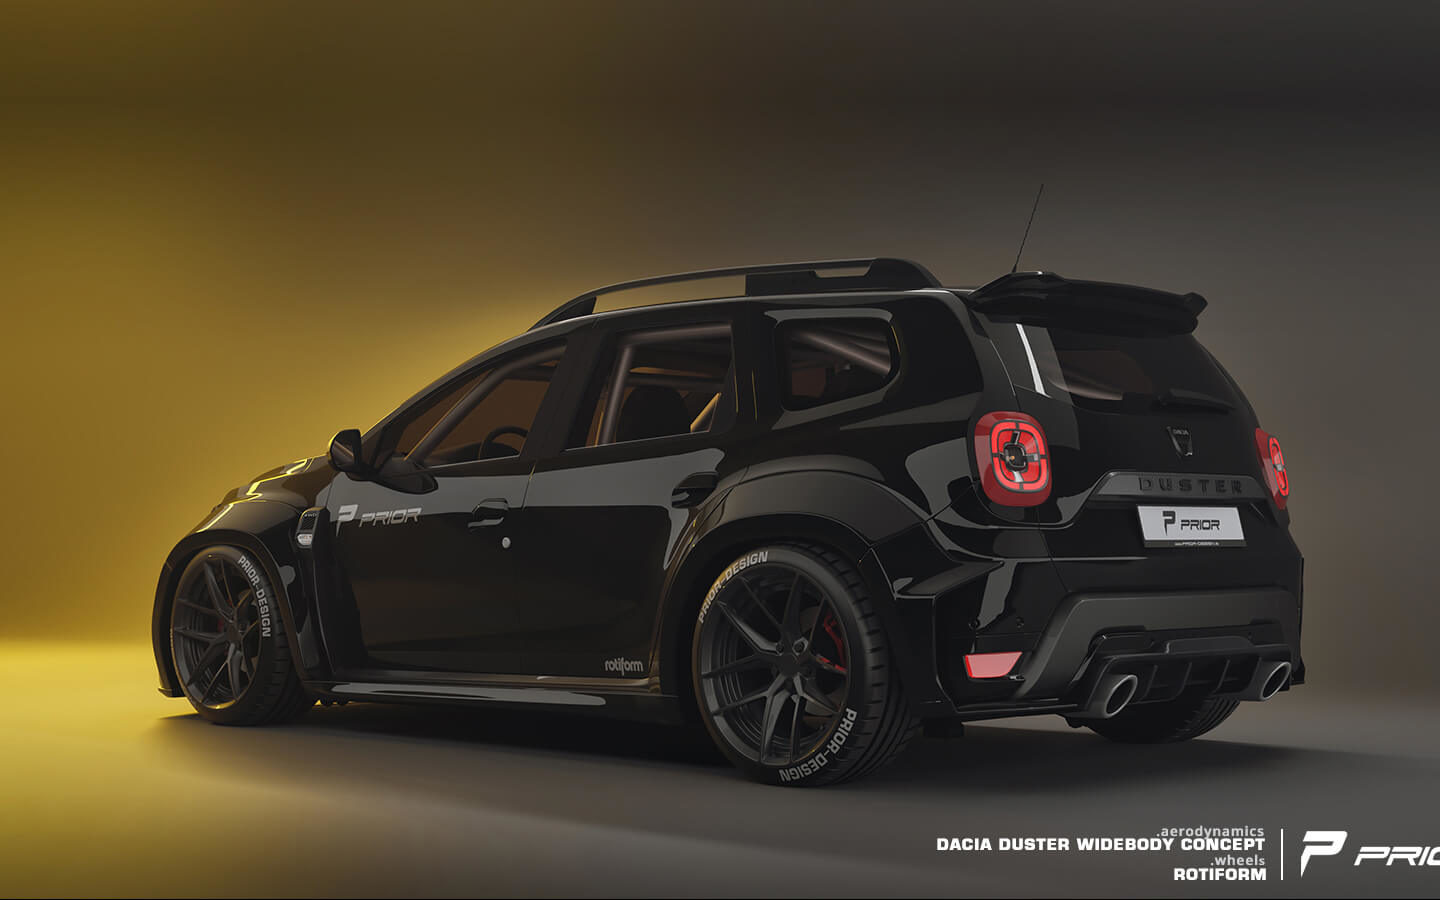 Dacia Duster Widebody Concept